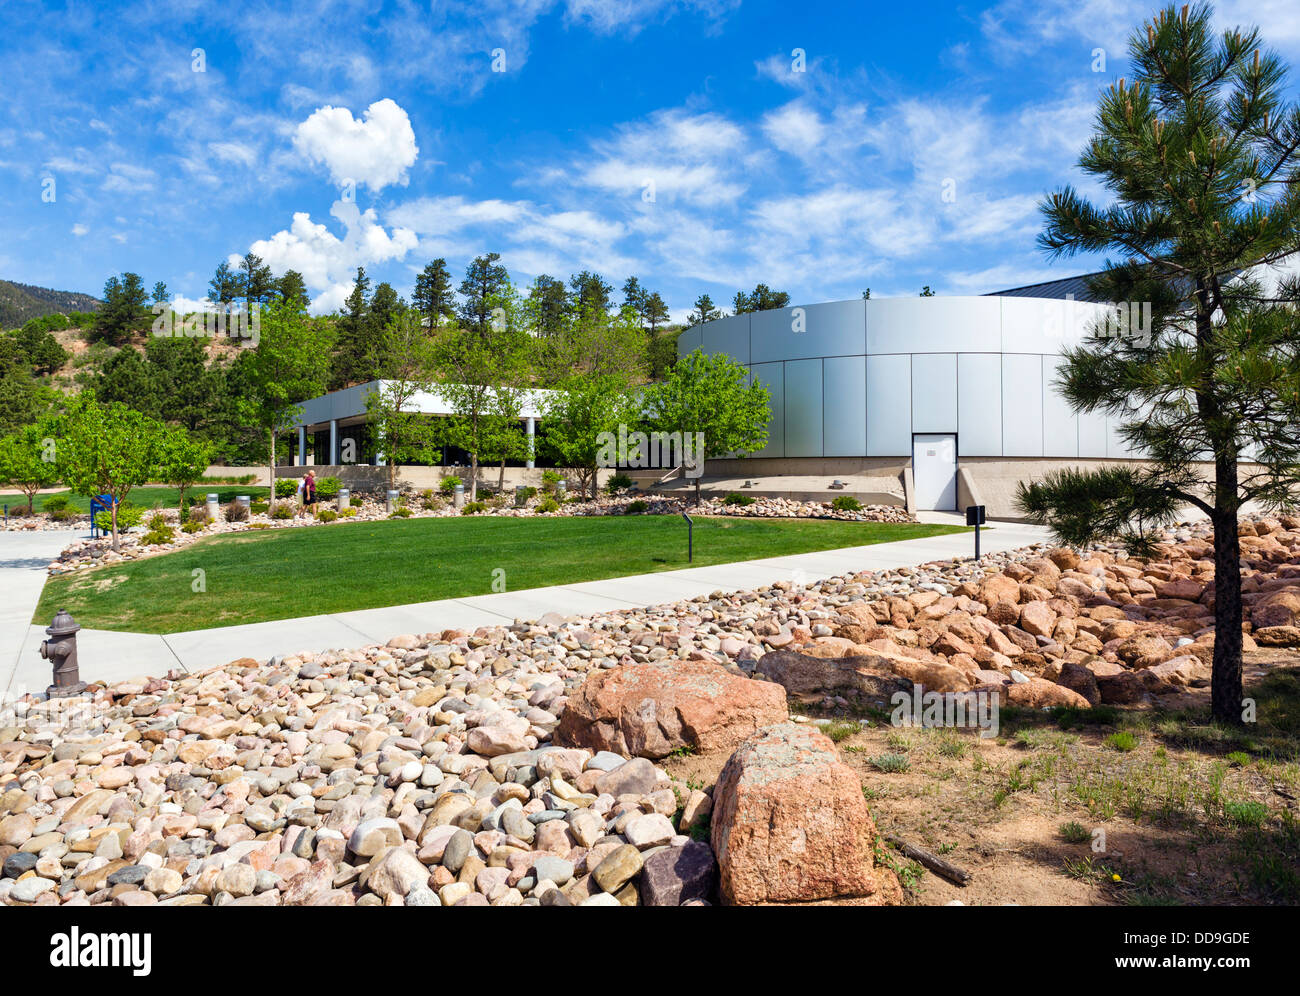 Visitor Center at the United States Air Force Academy, Colorado Springs, Colorado, USA - Stock Image